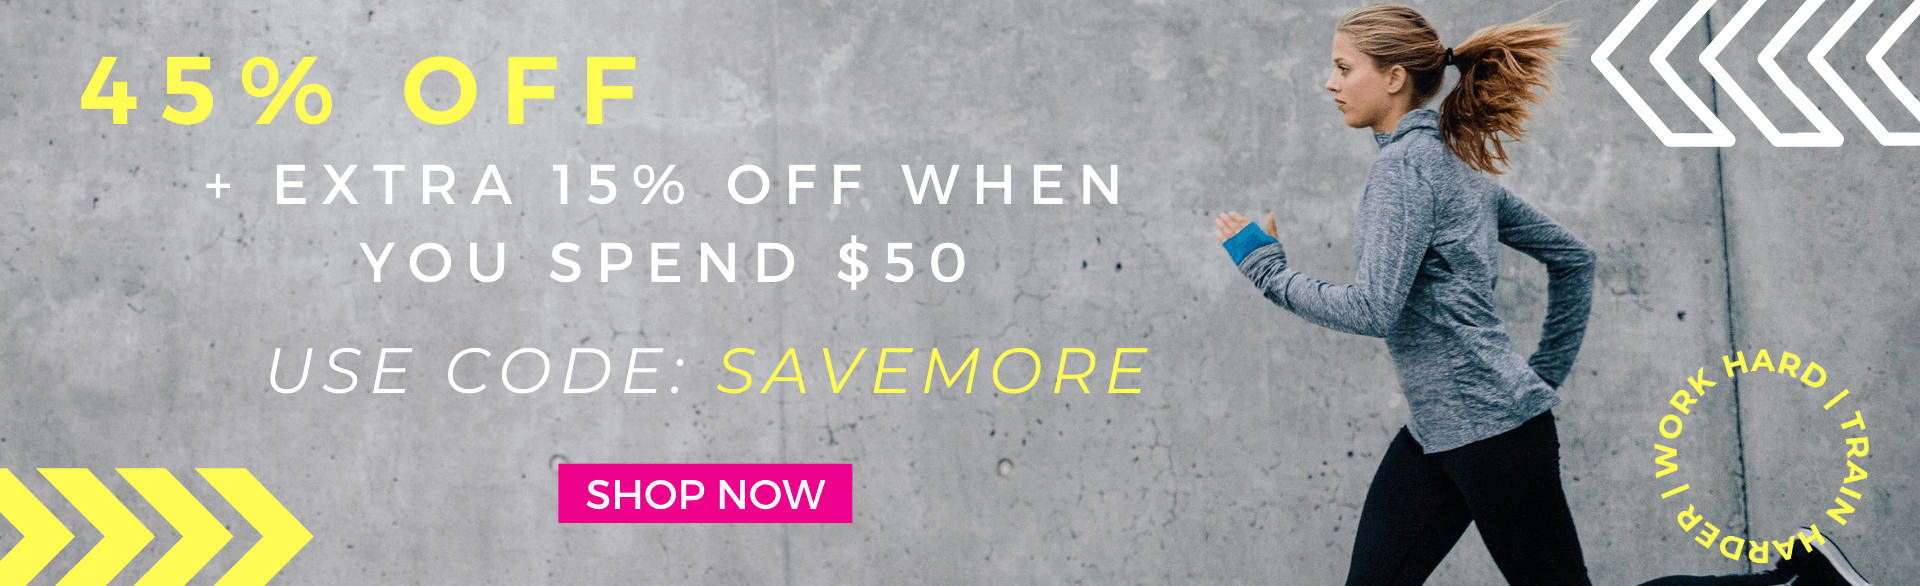 45% OFF + EXTRA 15% OFF WHEN YOU SPEND $50 WITH CODE: SAVEMORE